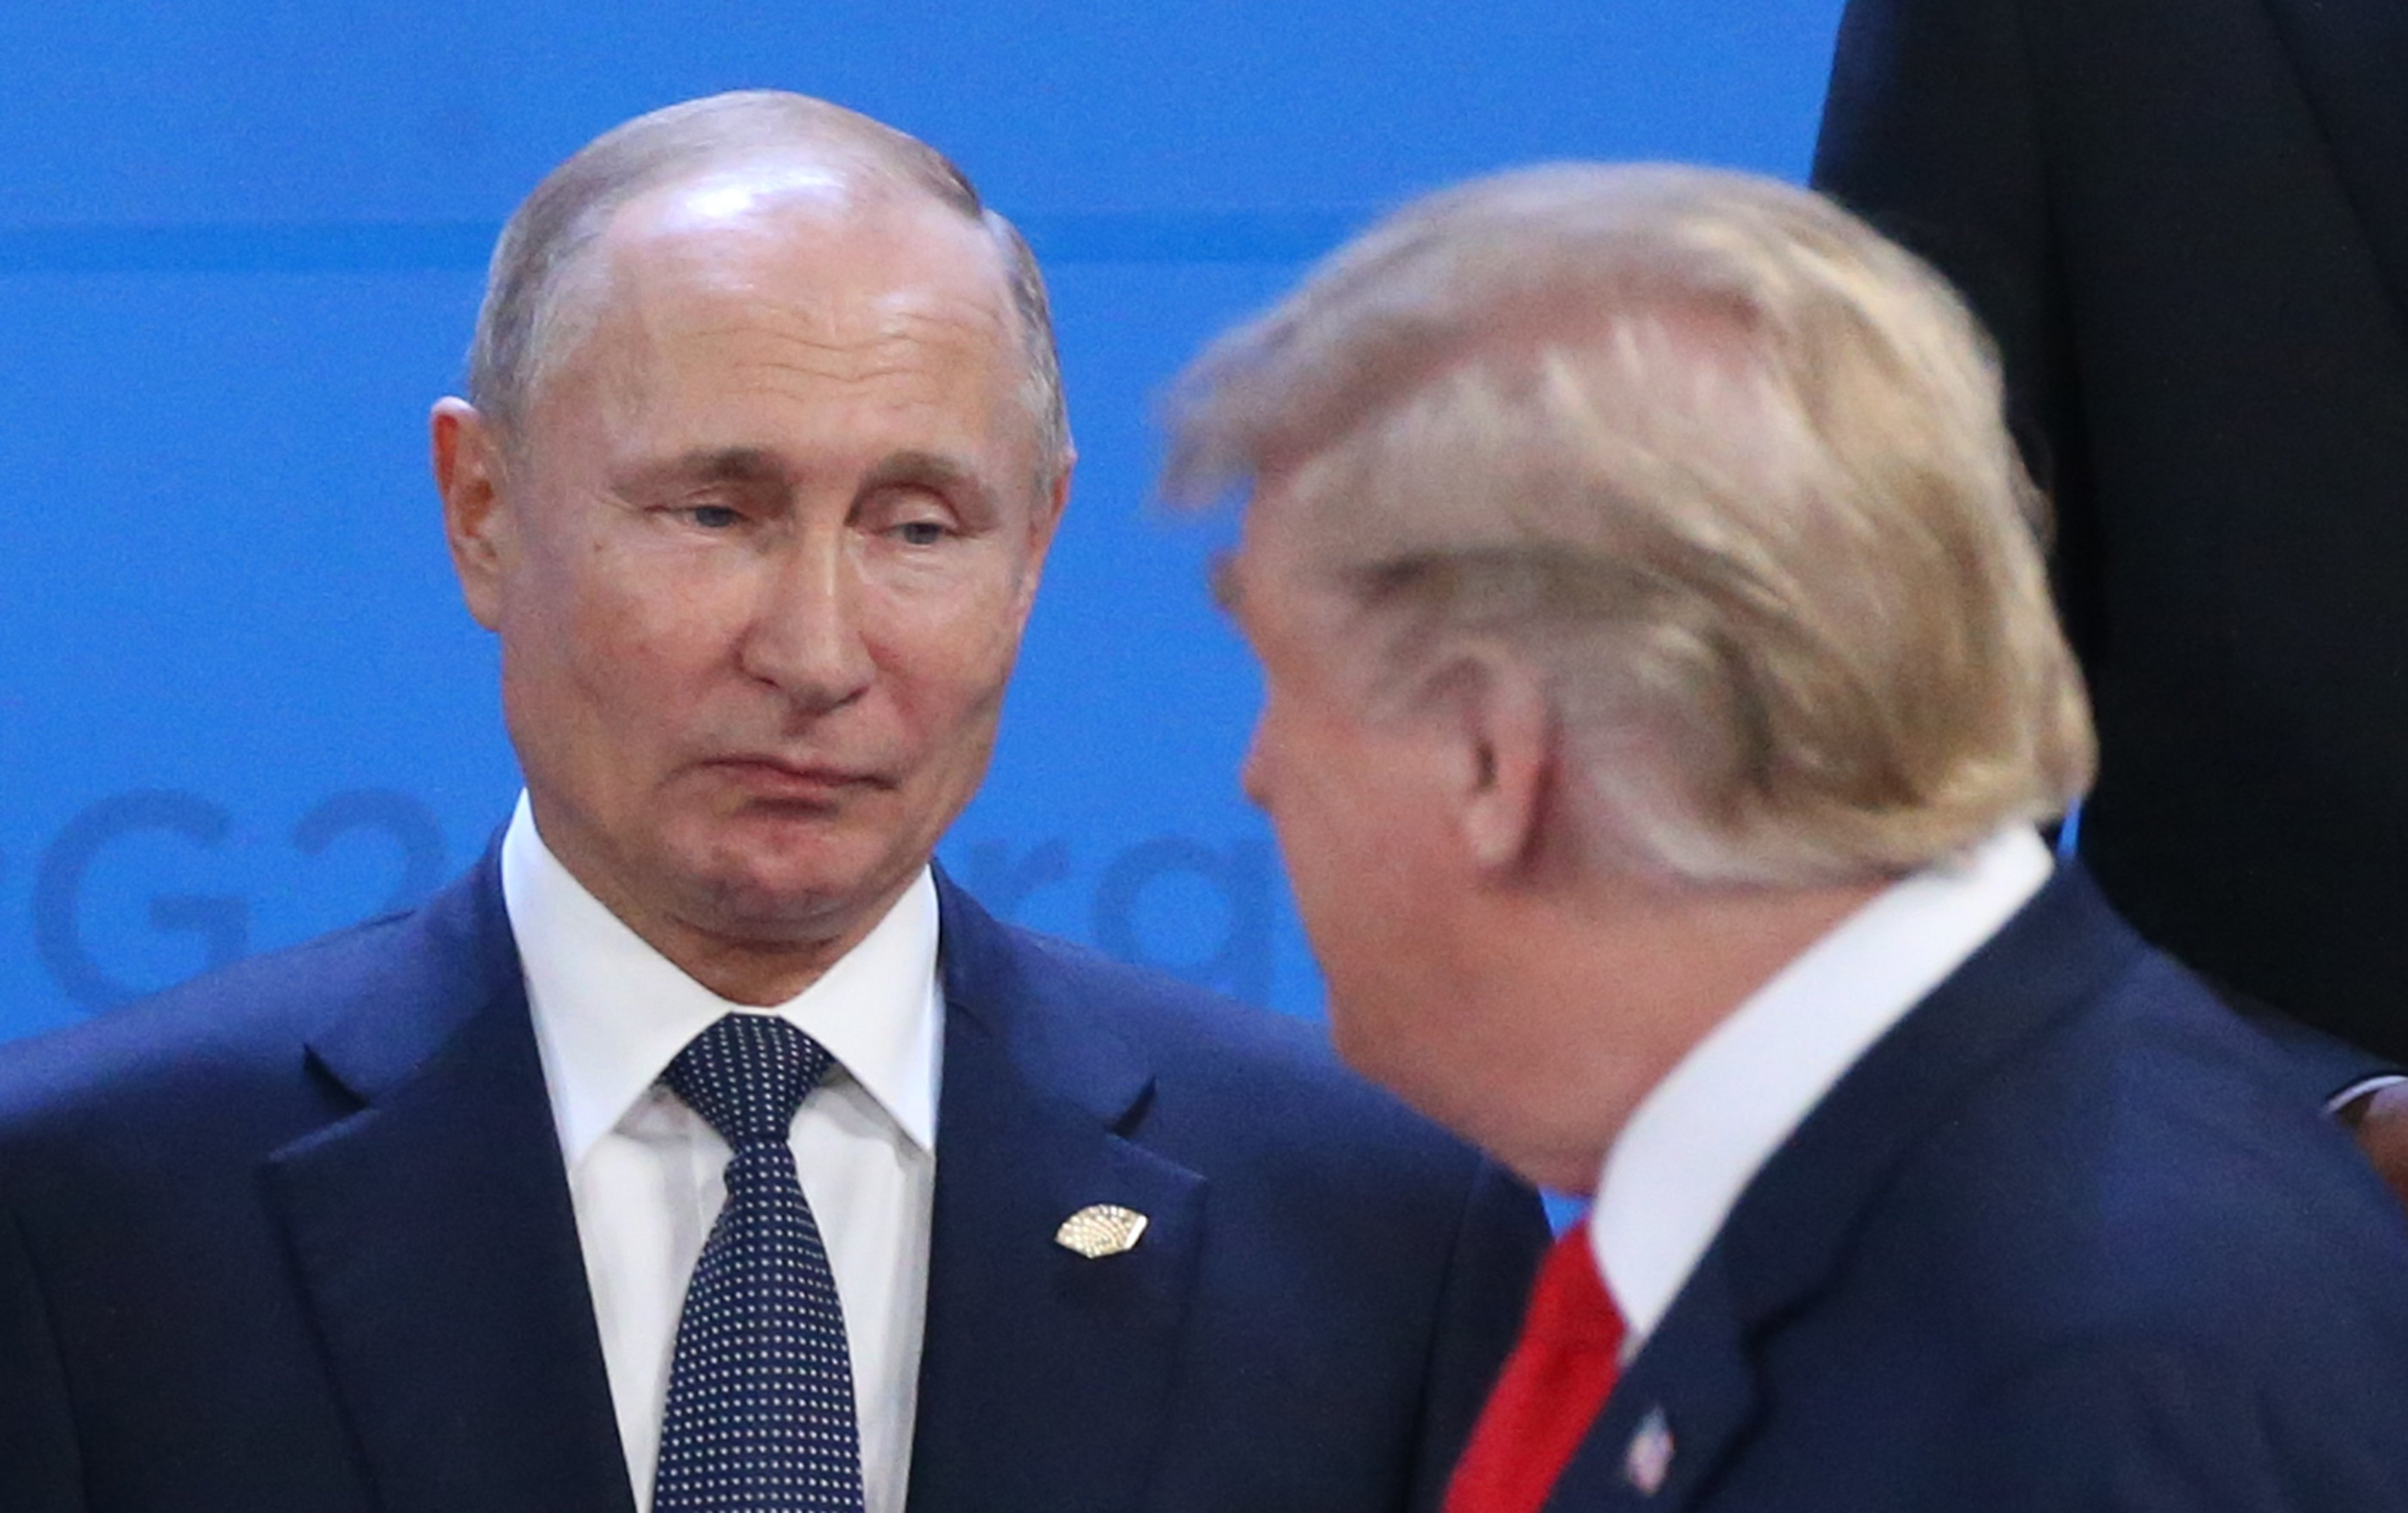 Russian President Vladimir Putin and U.S. President Donald Trump exchange looks during the opening ceremony of the G20 Summit's Plenary Meeting in Buenos Aires, Argentina | Photo: Getty Images